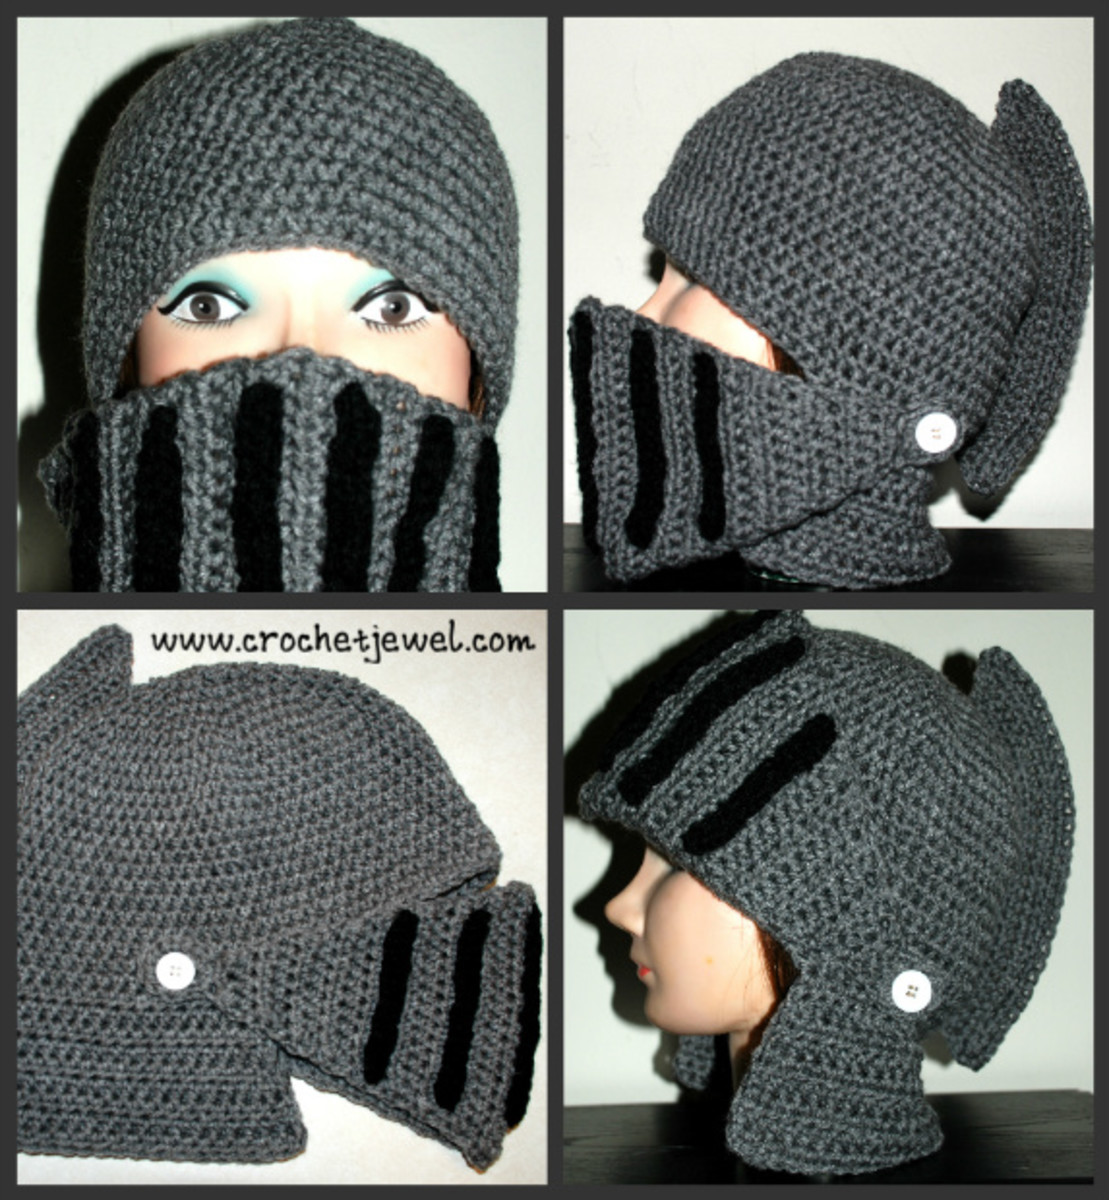 Crochet Men's Knight Helmet Hat